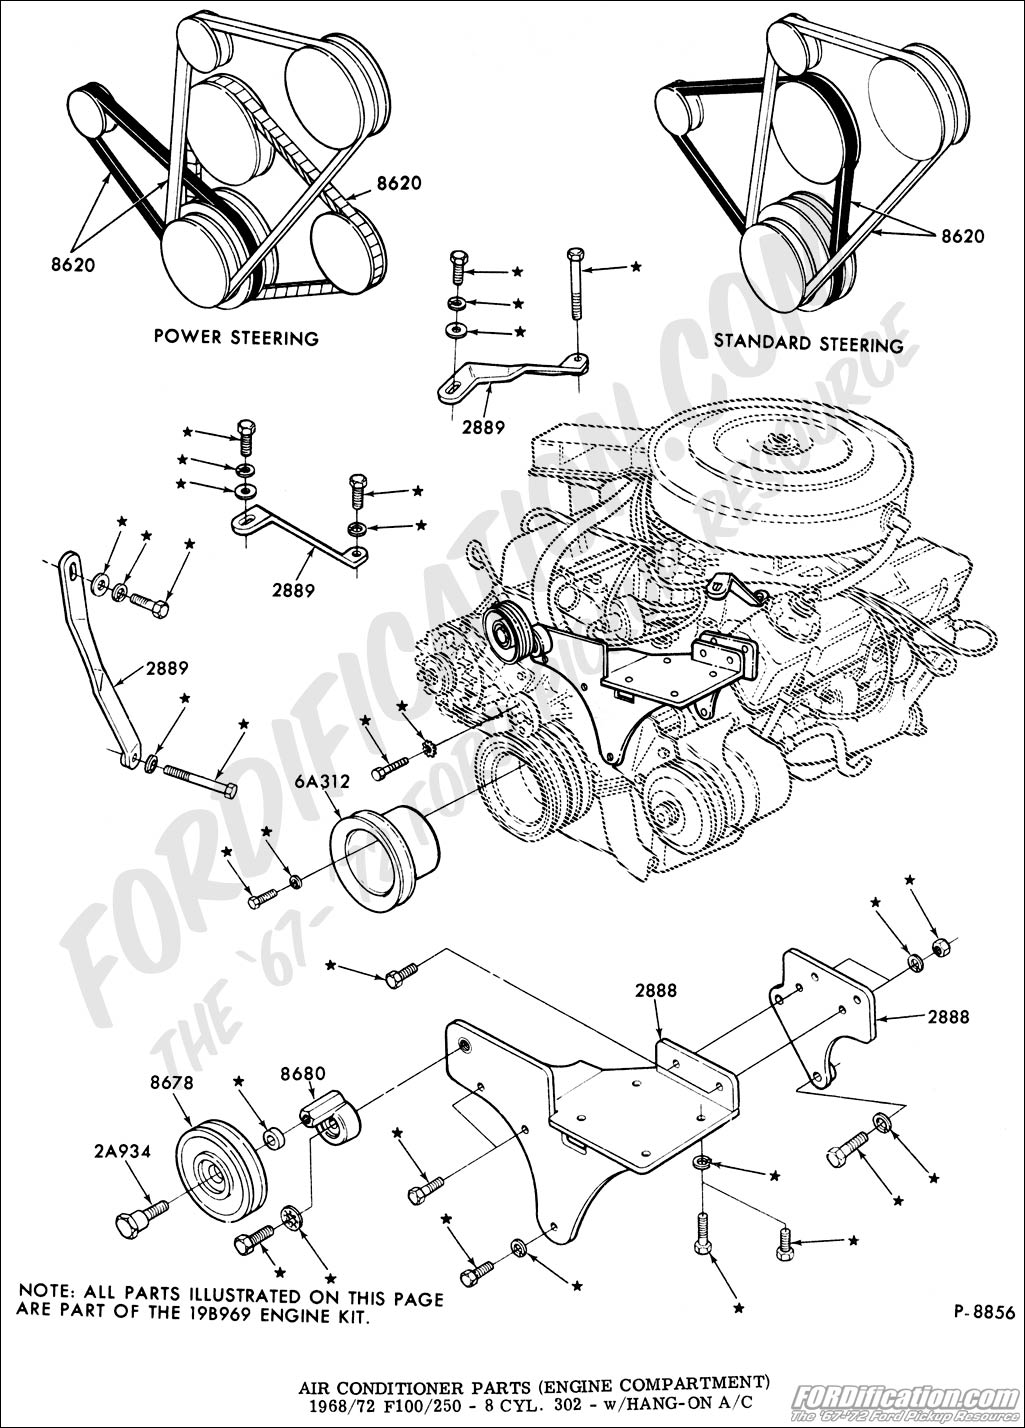 v8 chevy engine wiring diagram 1974 wiring schematic diagram5 0 v8 engine diagram wiring library marine battery switch wiring diagram ford f 150 engine